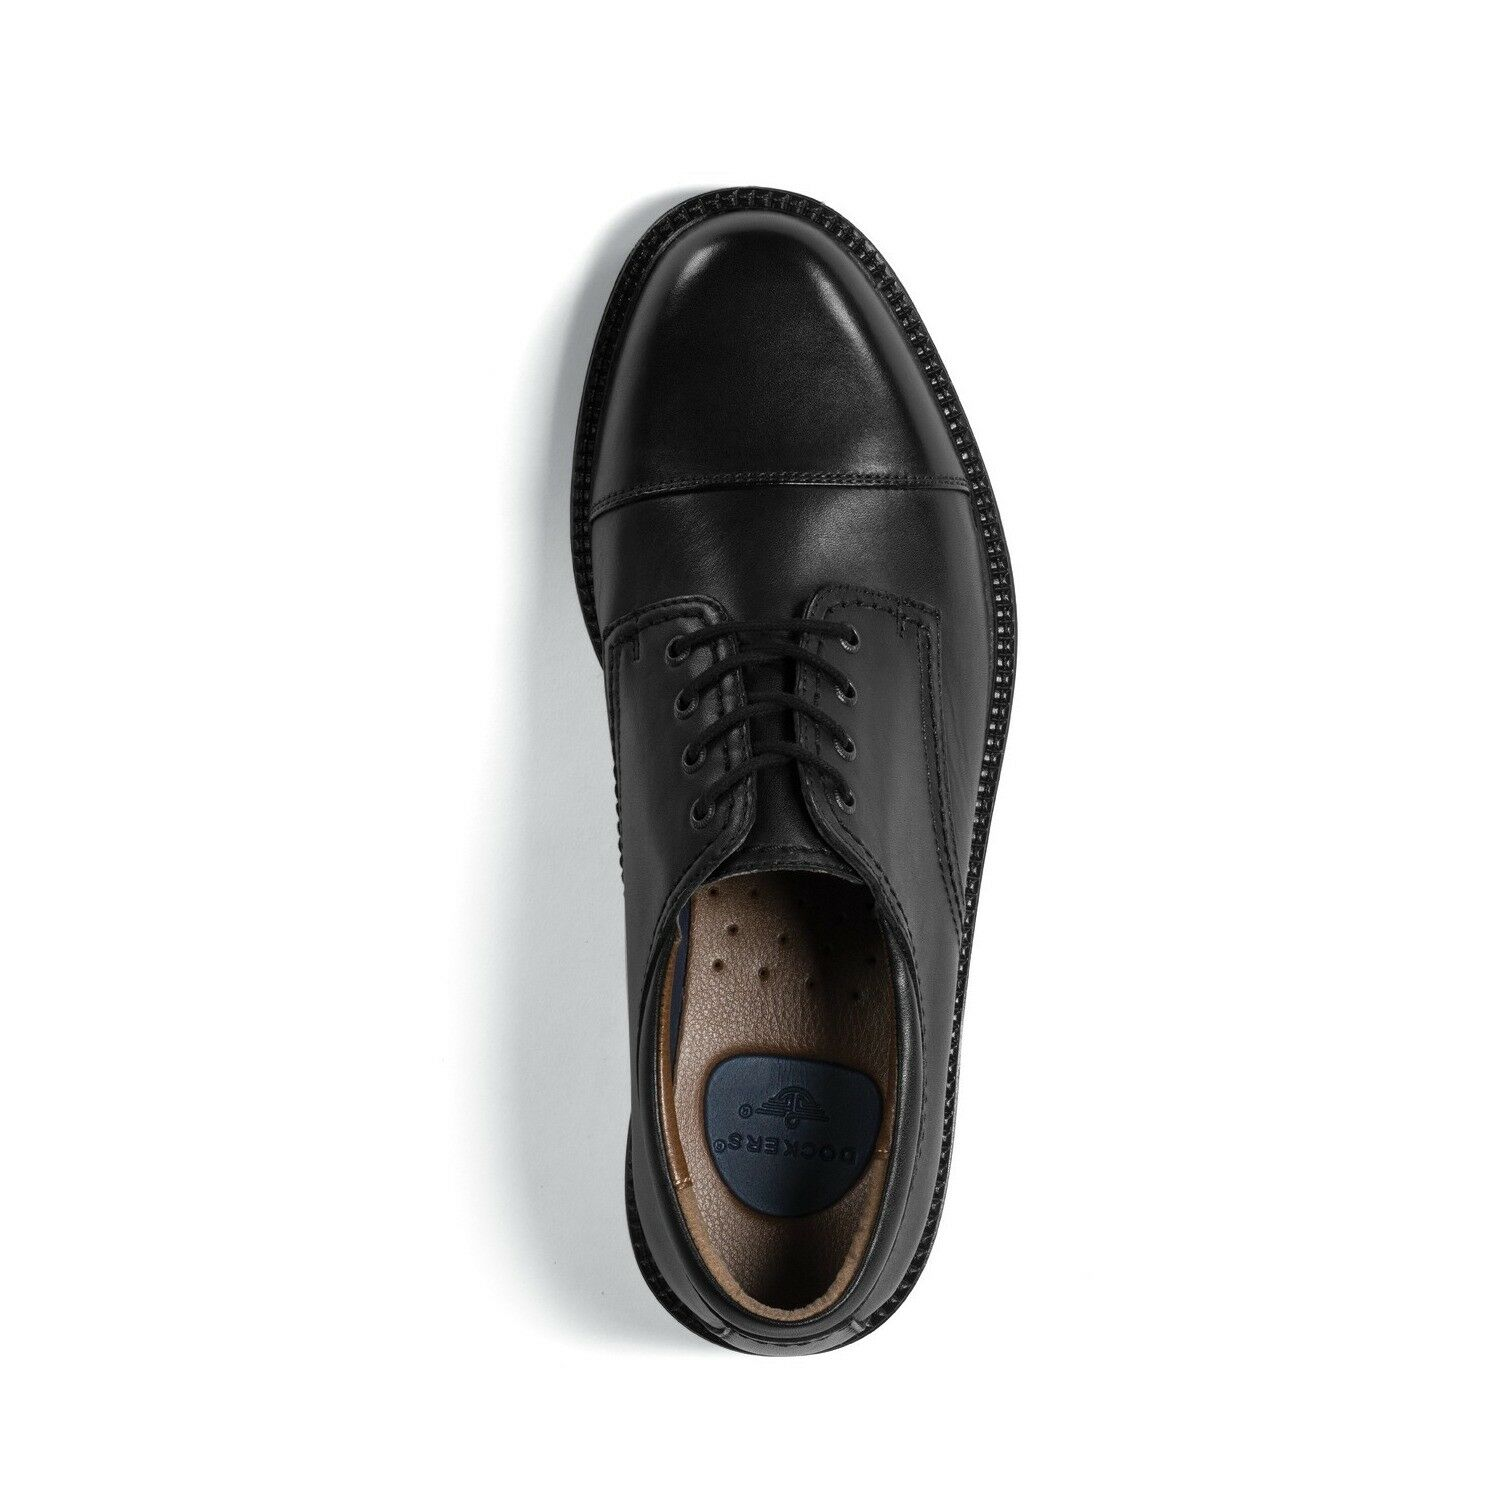 Dockers Mens Gordon Genuine Leather Dress Casual Cap Toe Lace-up Oxford Shoe 1